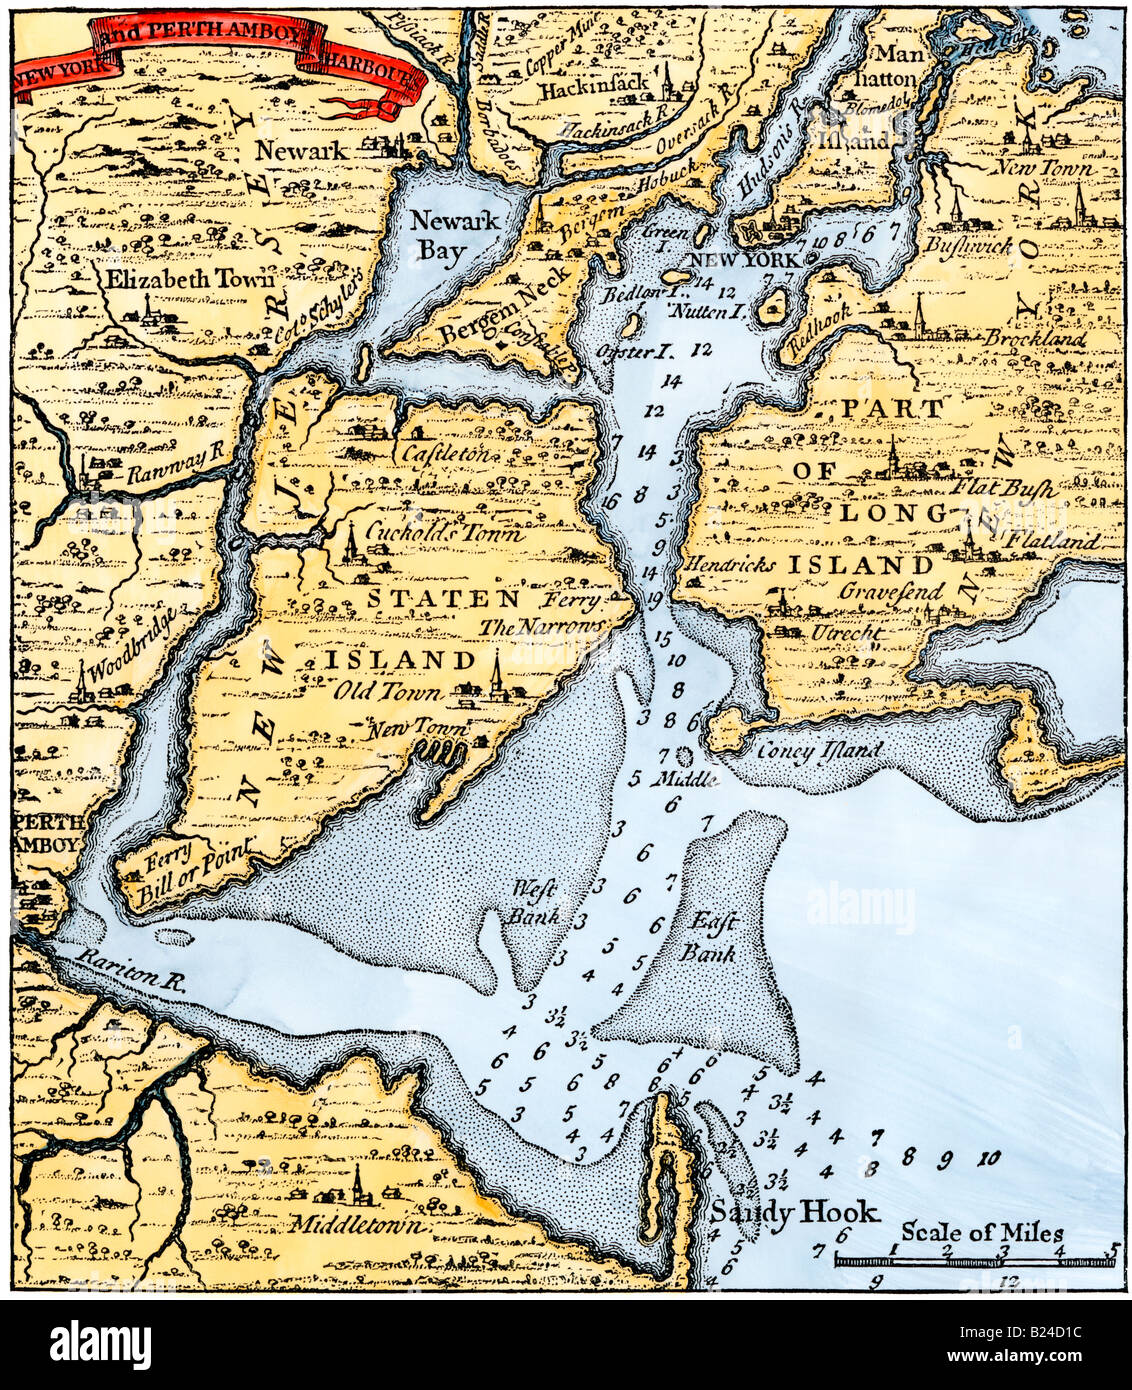 Popples map of New York City and the surrounding area 1733